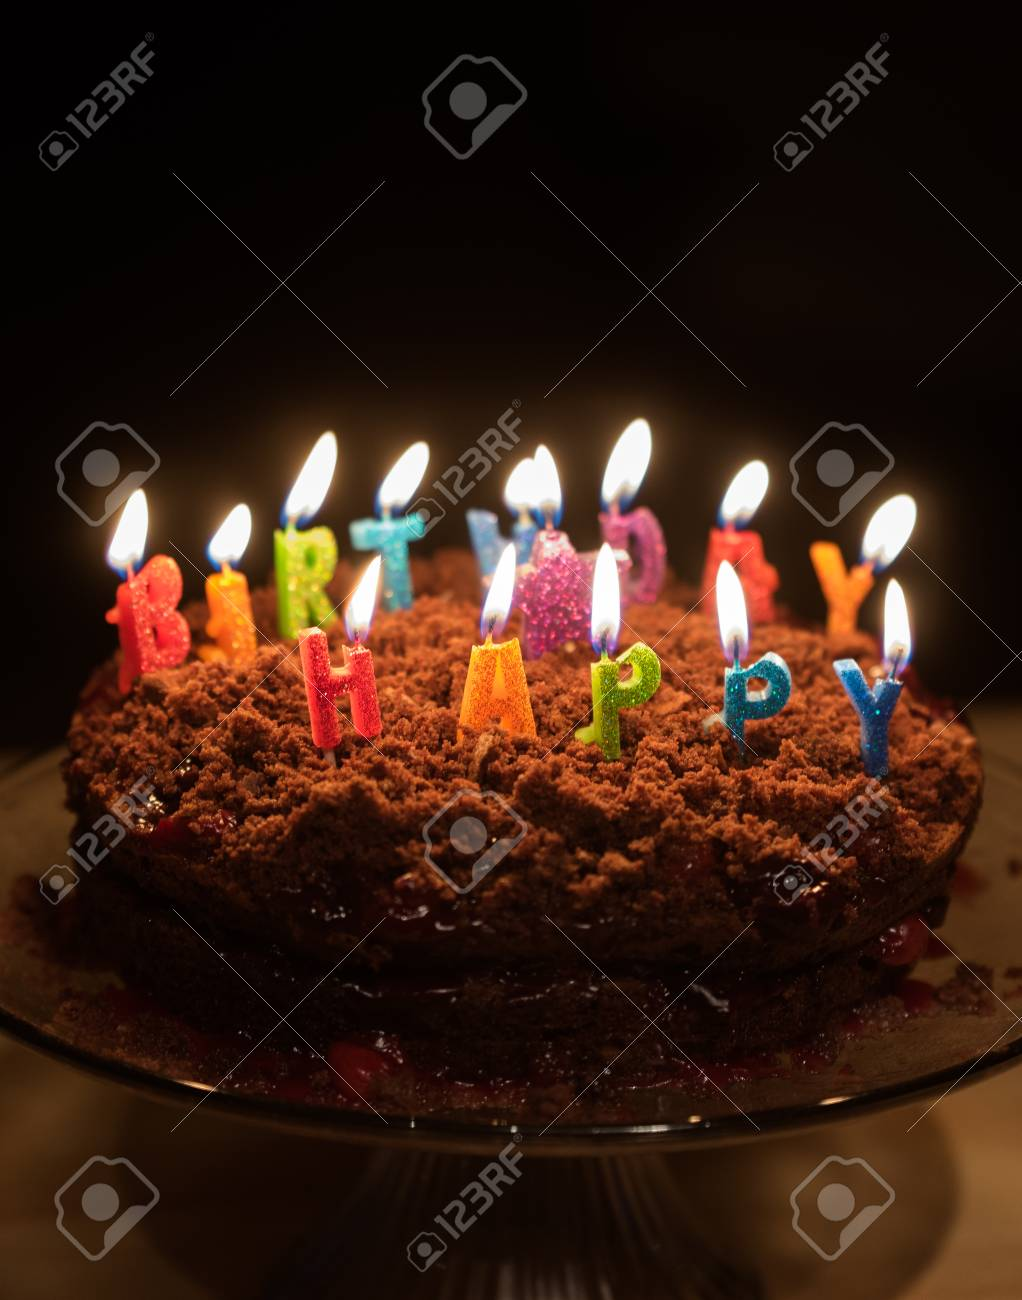 Tremendous Chocolate Birthday Cake With Candles On It Stock Photo Picture Personalised Birthday Cards Veneteletsinfo